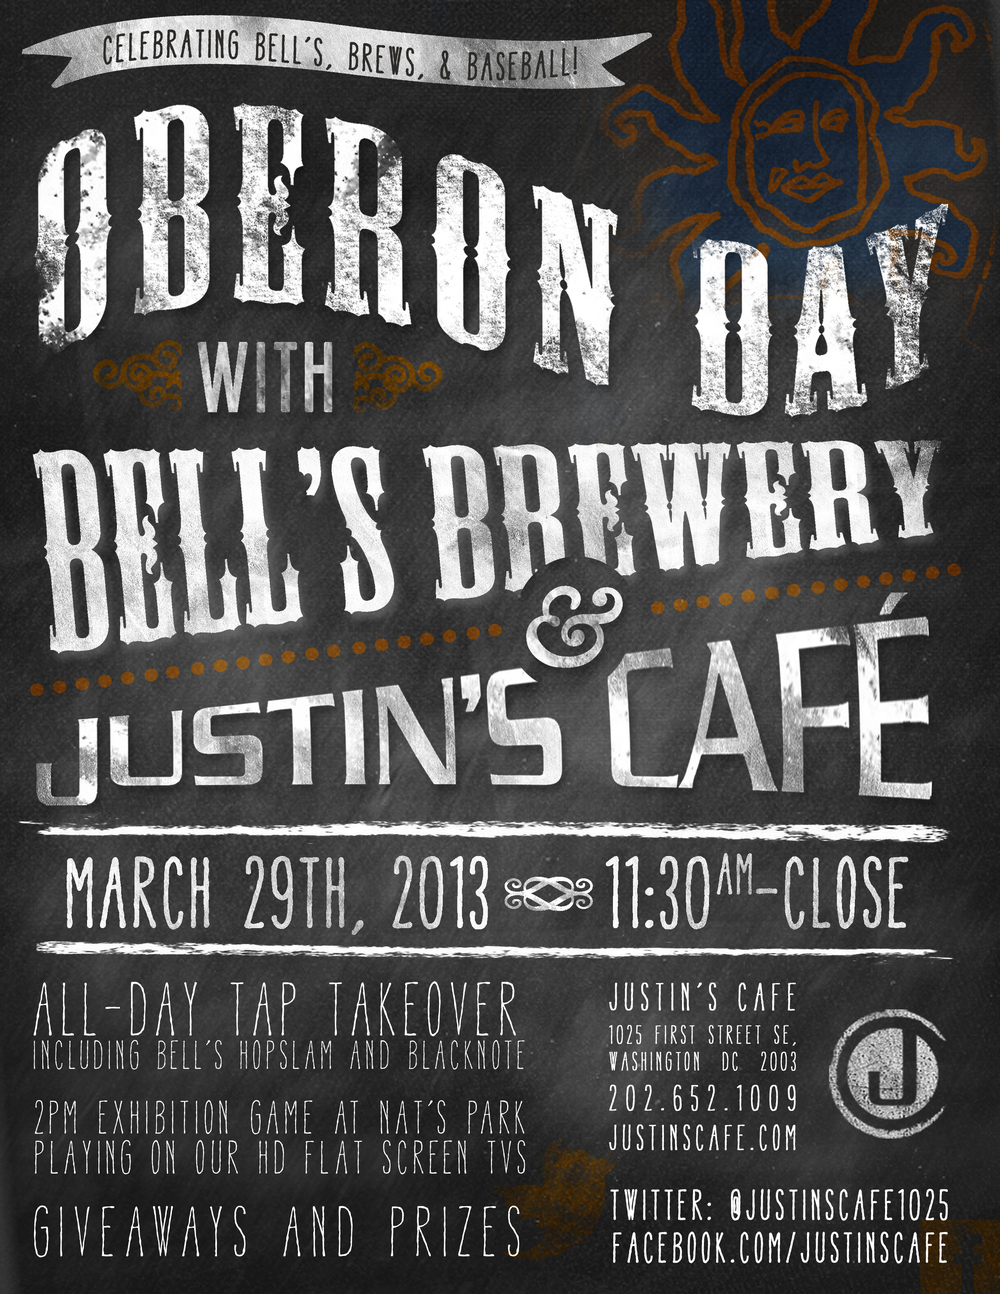 justinscafe_march2013_oberonday_FINALPRINT.jpg